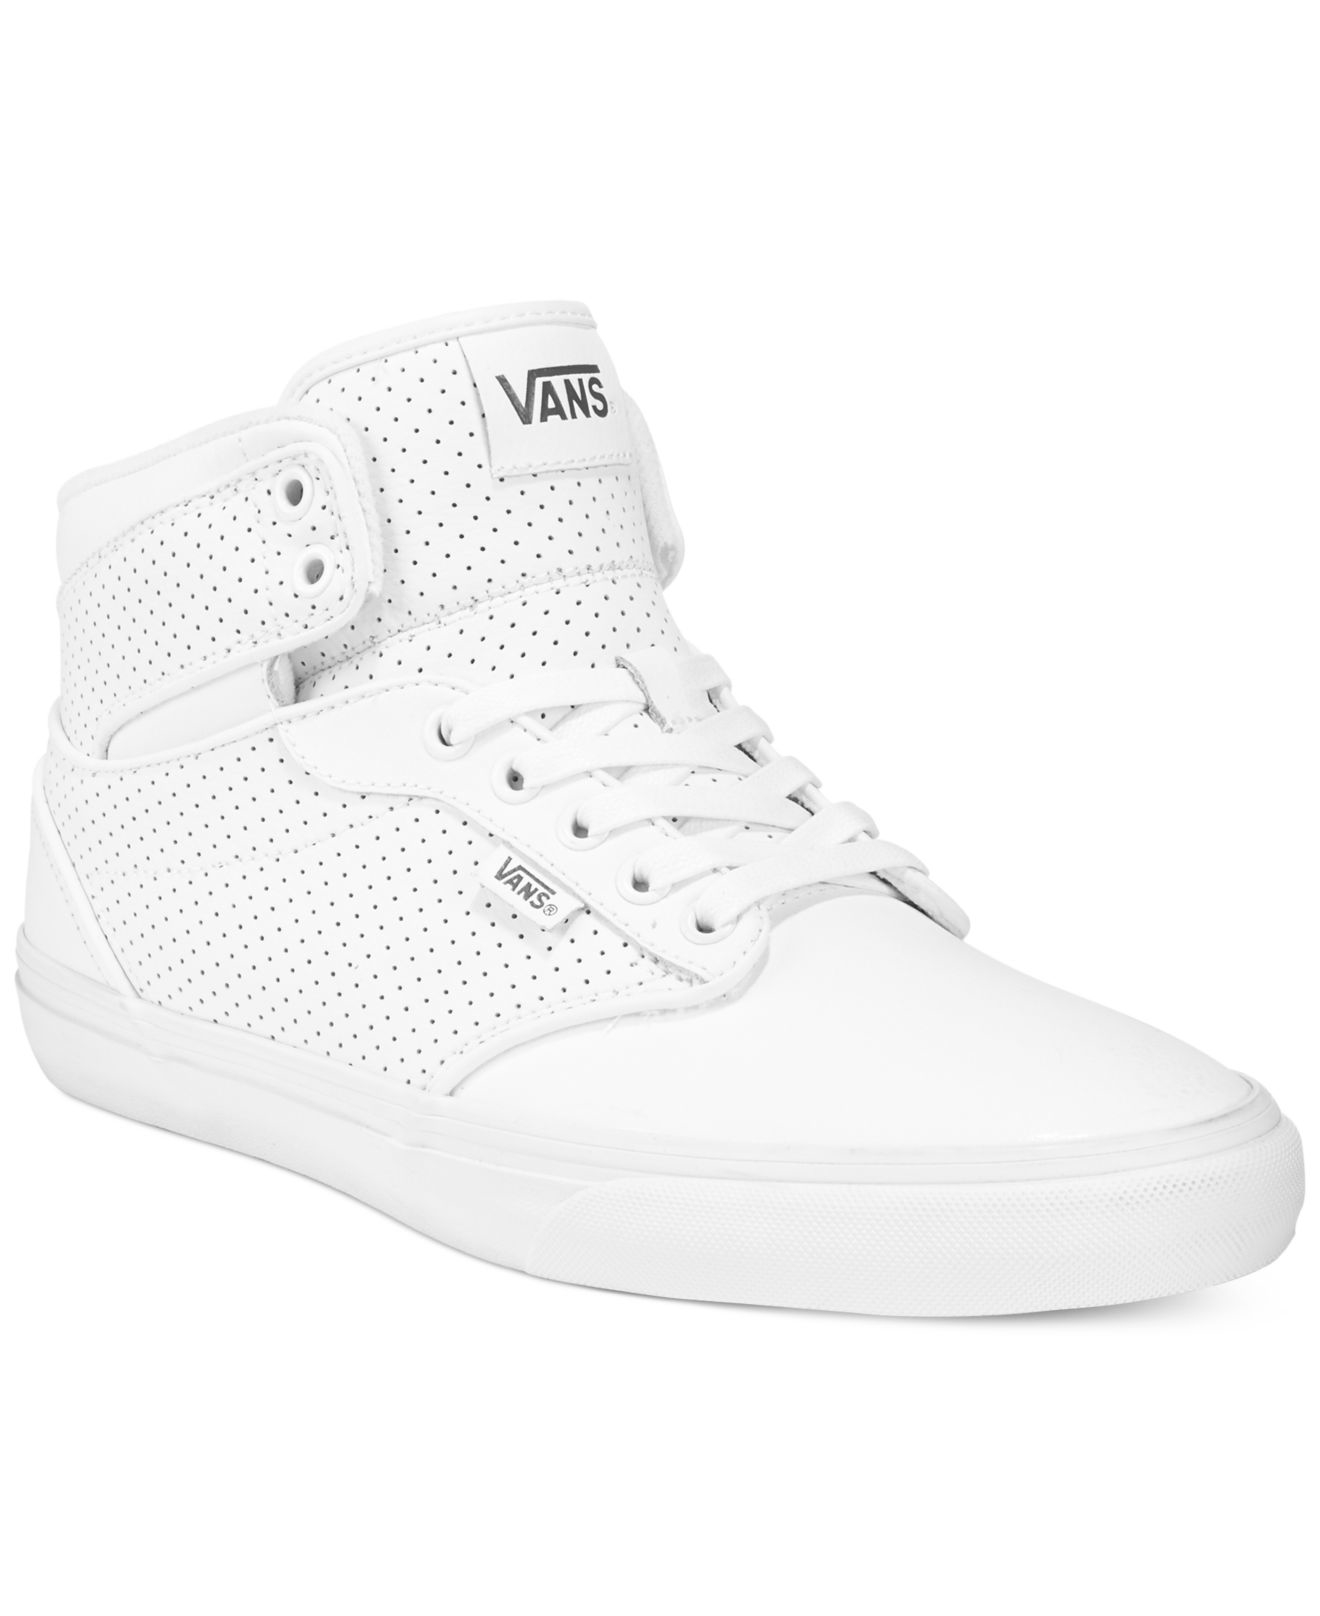 45e59758d9 Lyst - Vans Men s Atwood Hi-top Sneakers in White for Men